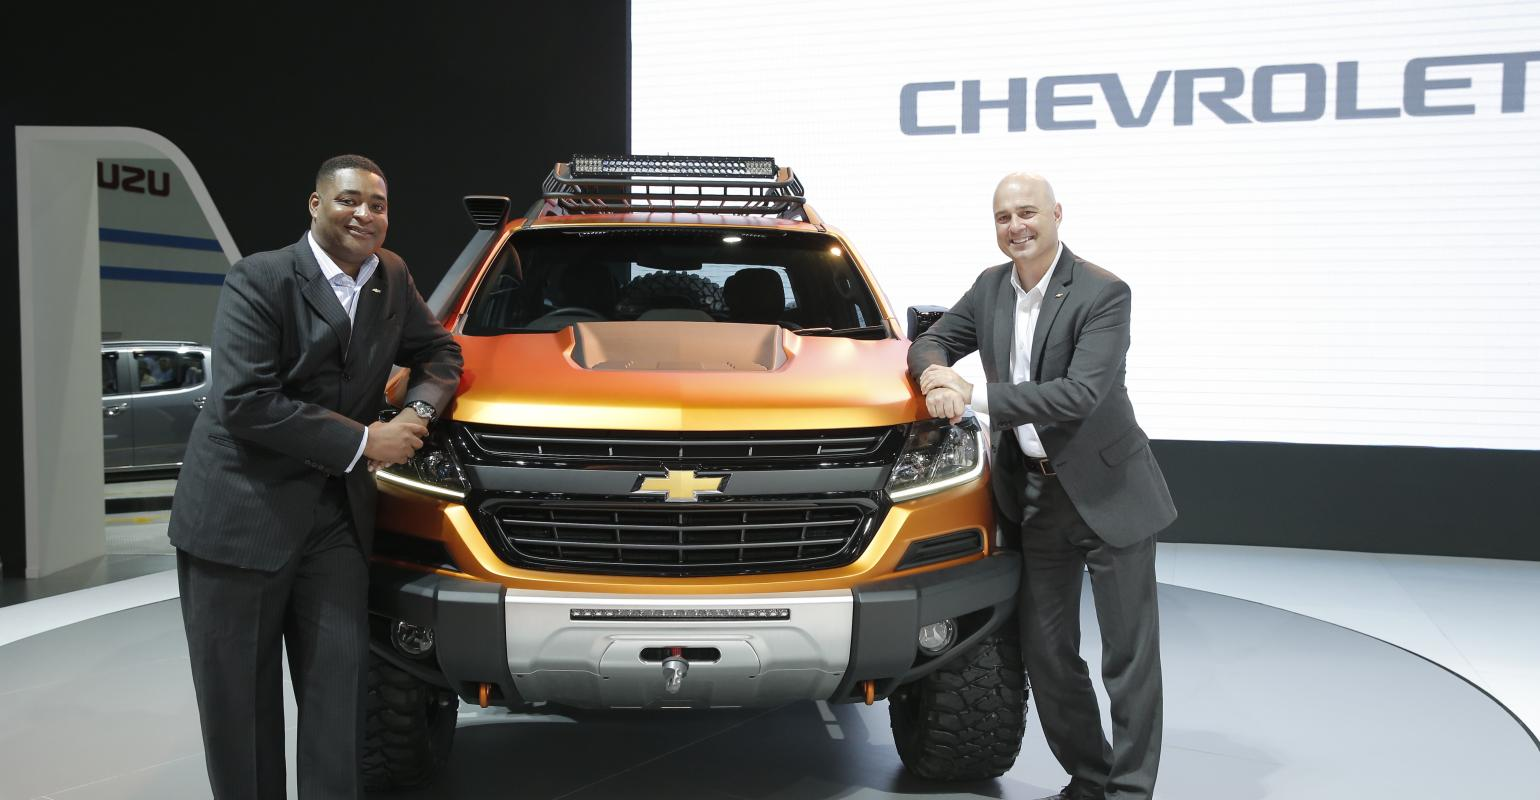 General Motors Pickups SUVs Lead Charge In ASEAN Region WardsAuto - American heritage car show